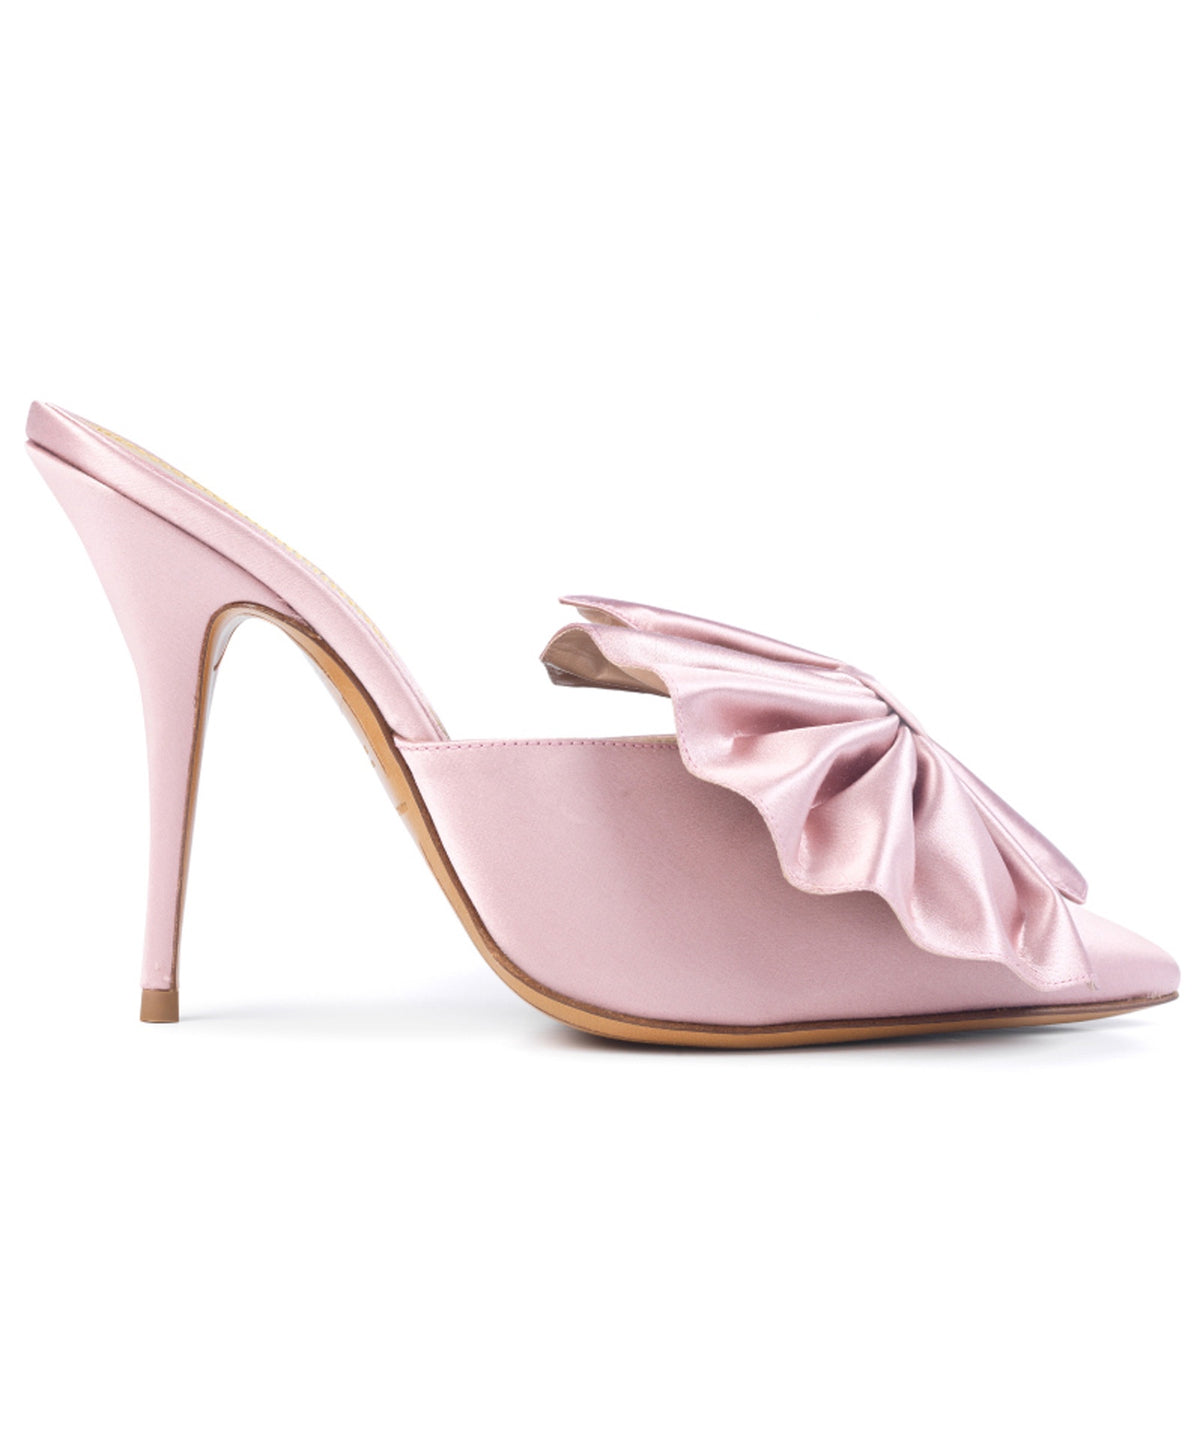 Kate Mules Blush SIDE VIEW